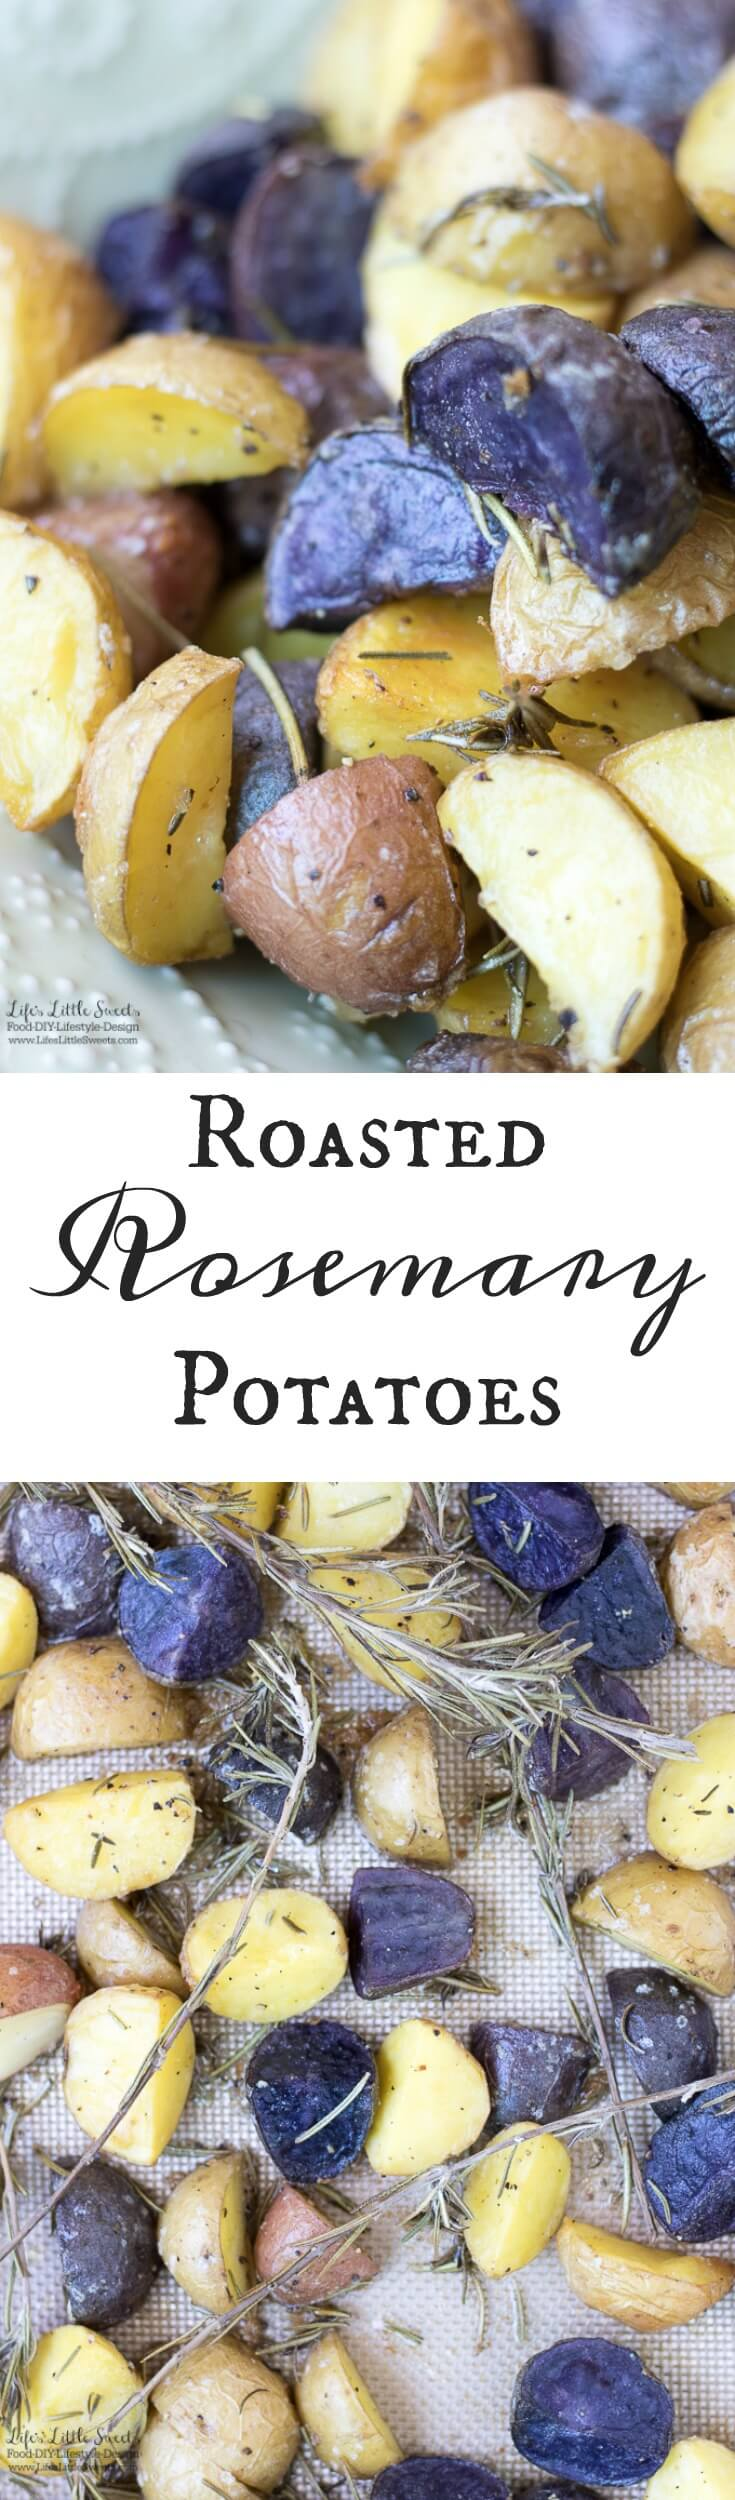 These Roasted Rosemary Potatoes are a savory, aromatic and delicious side dish to go with your meal or have them over a fresh salad. (vegan option) www.lifeslittlesweets.com